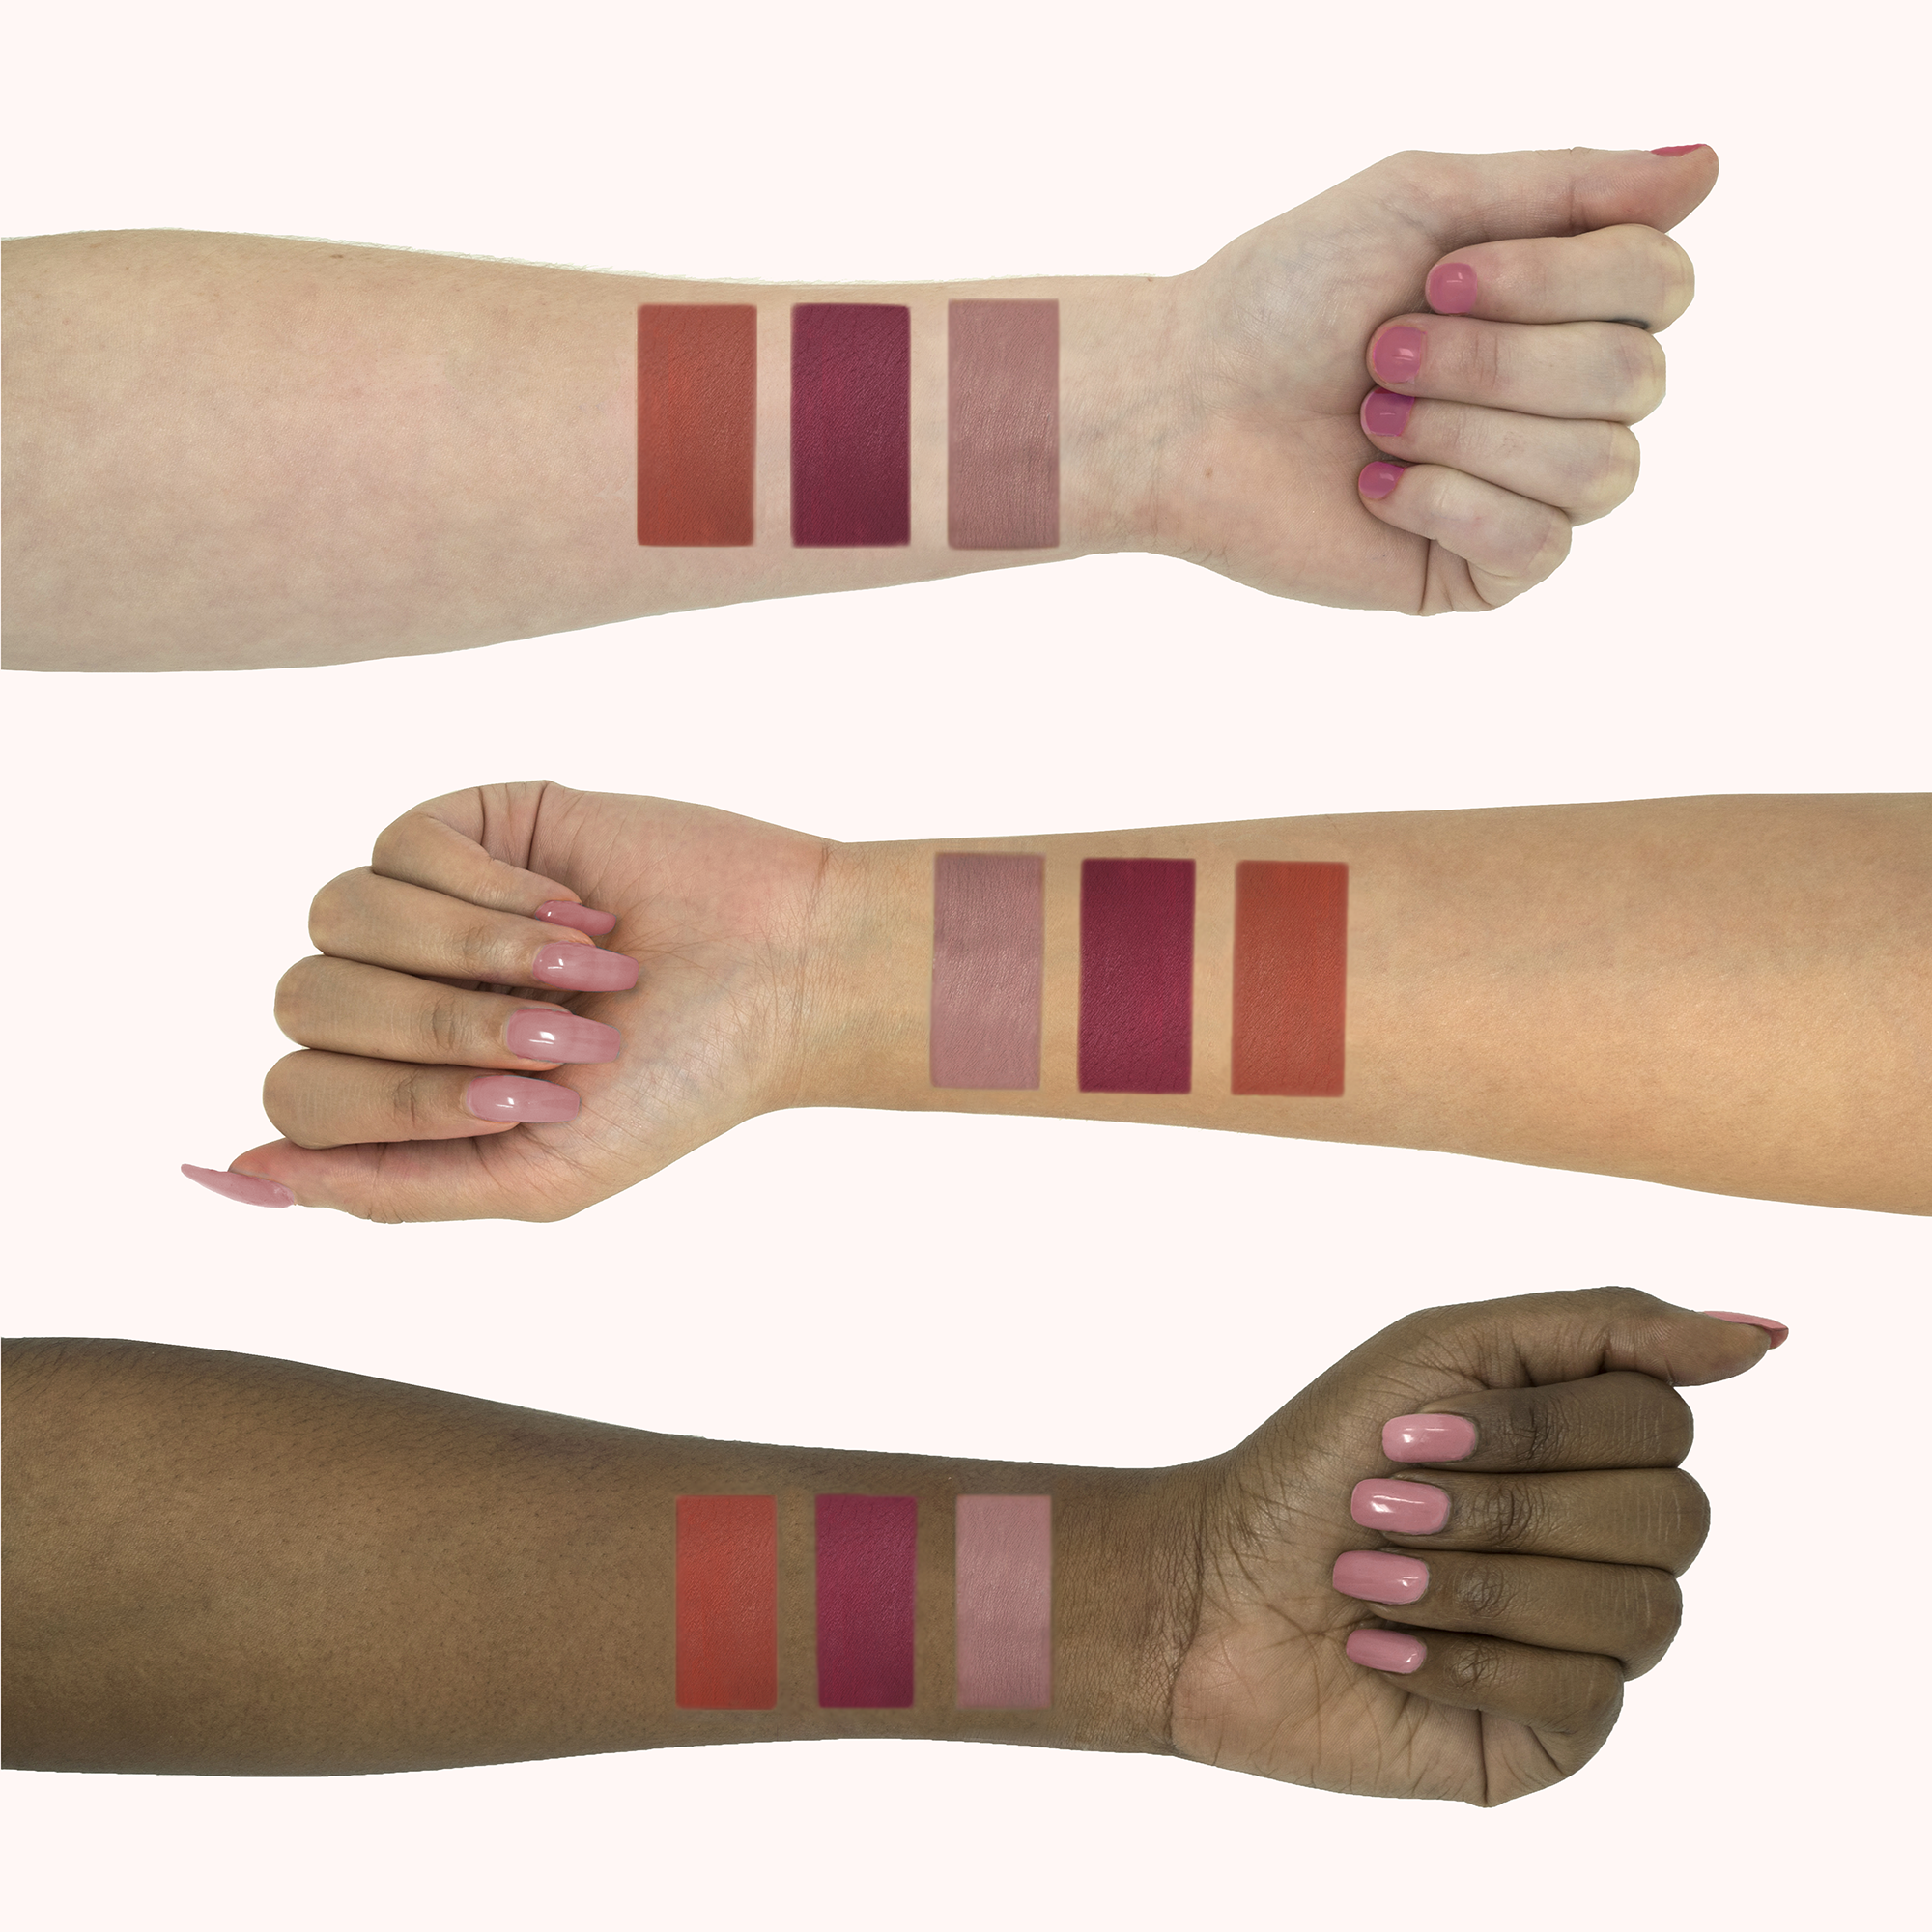 October KissMe Arm Swatches